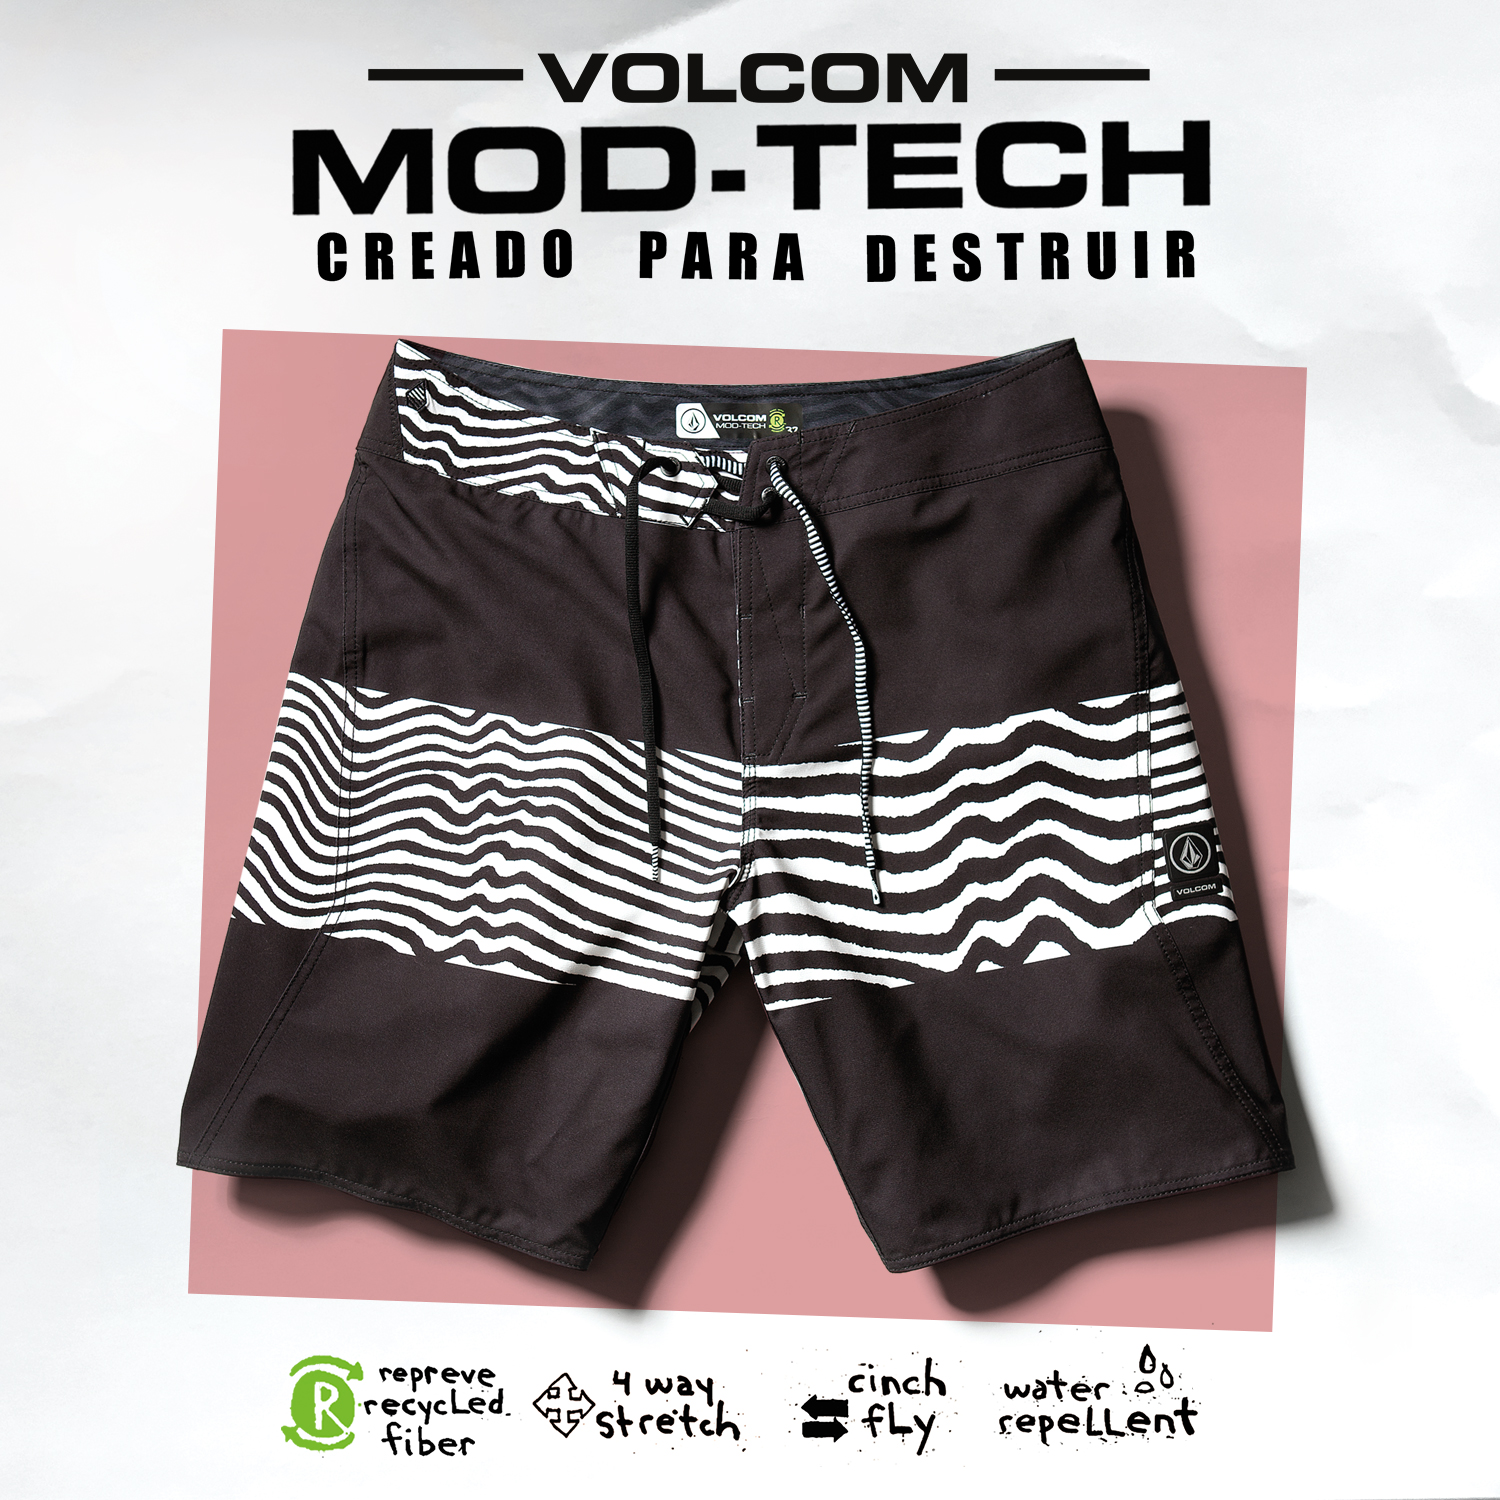 volcom_mod-tech_post01